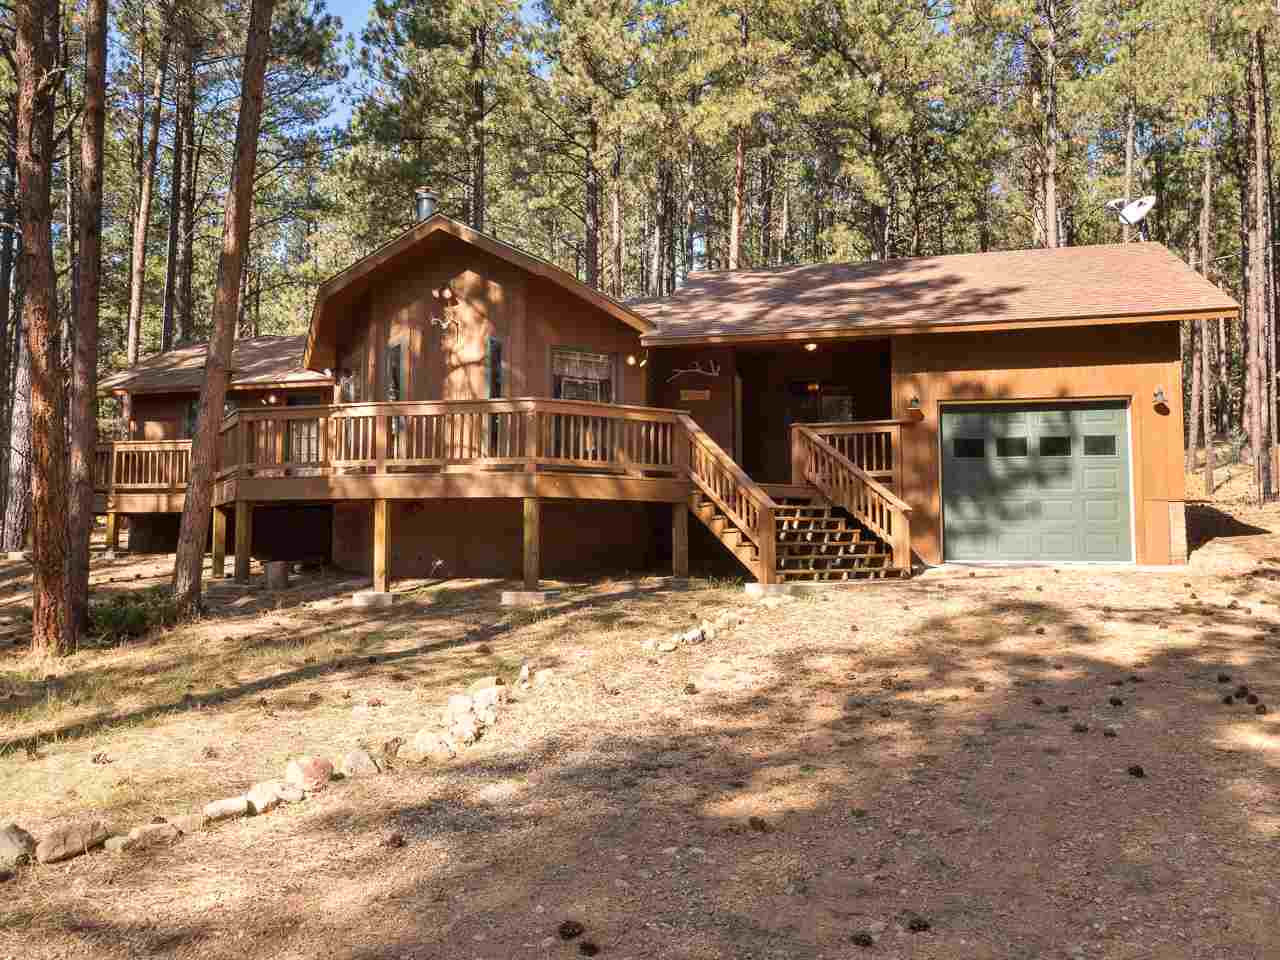 104A Onate Rd, Angel Fire, NM 87710